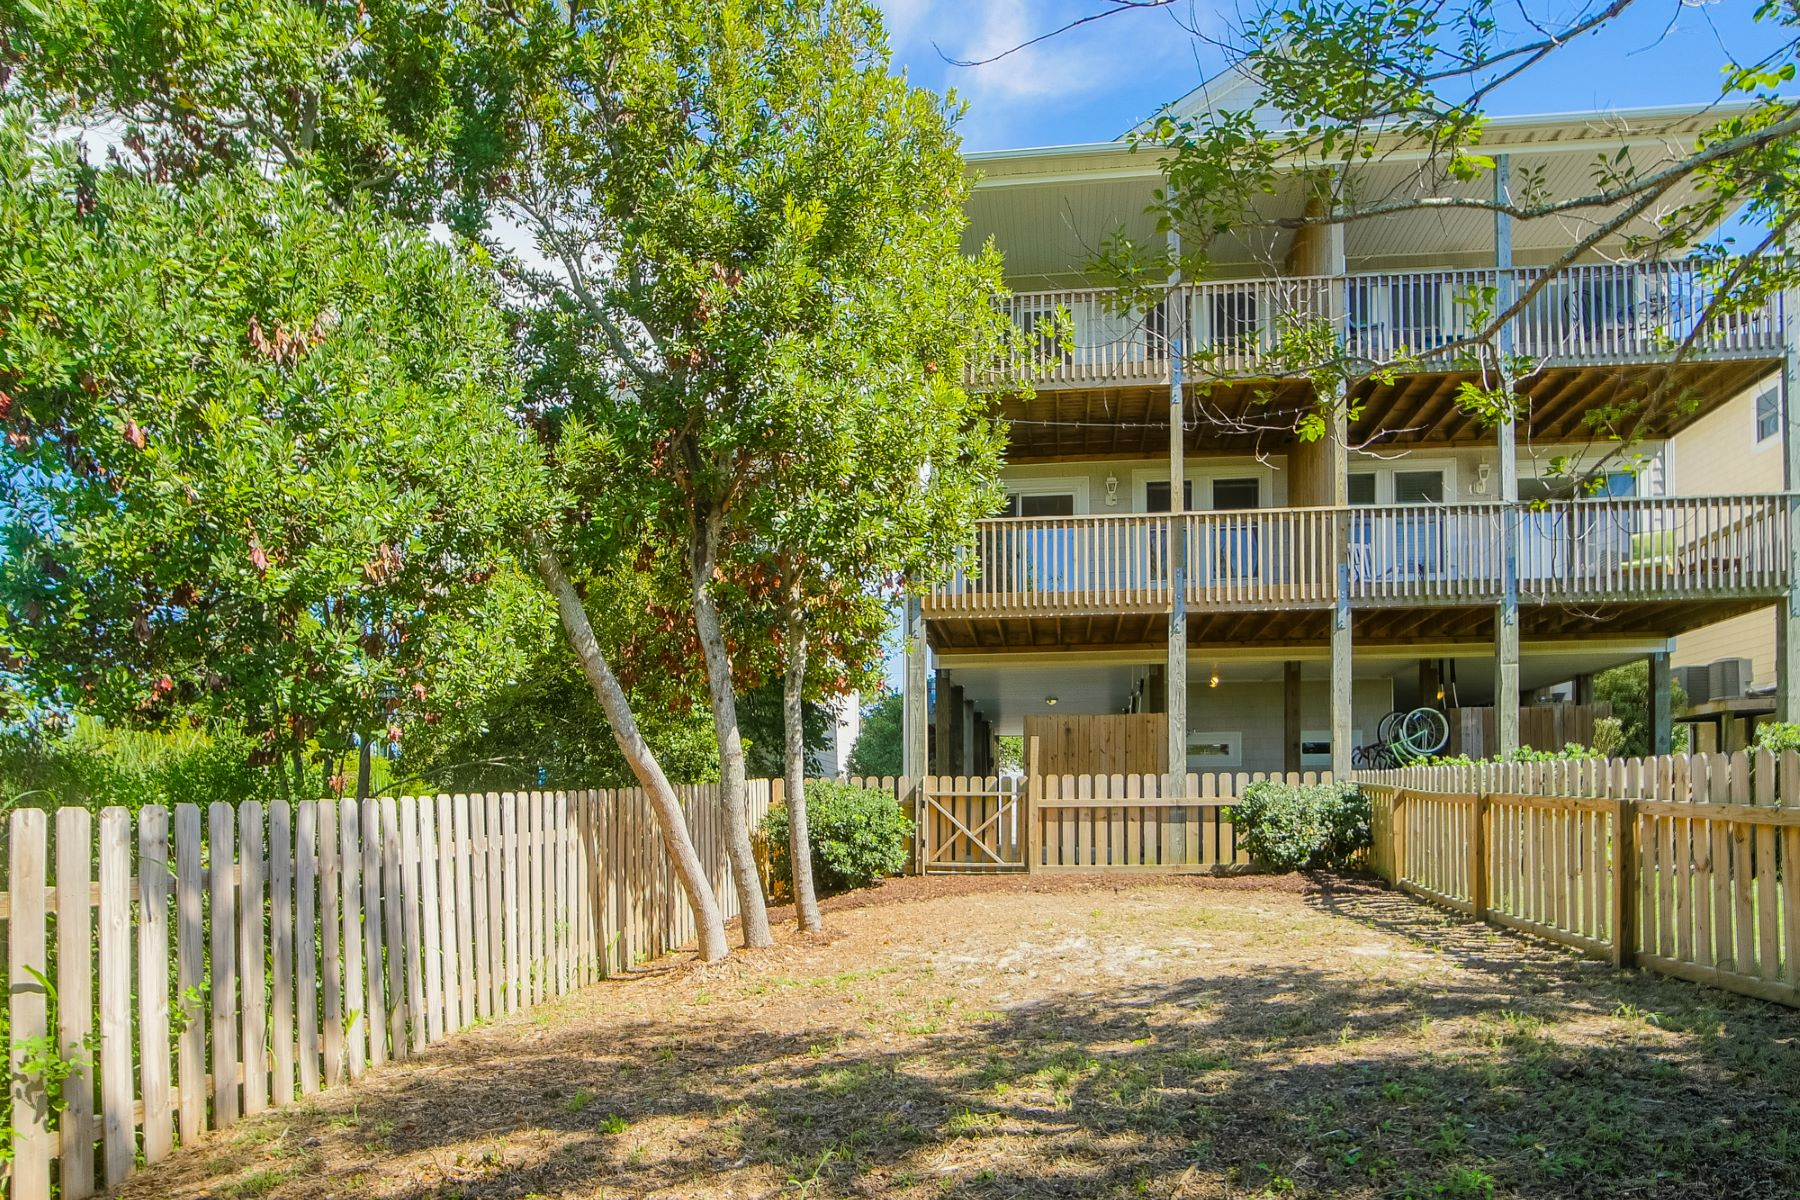 Stadthaus für Verkauf beim Beach Townhouse with Sweeping Views of Nature 421-B N New River Dr Surf City, North Carolina, 28445 Vereinigte Staaten